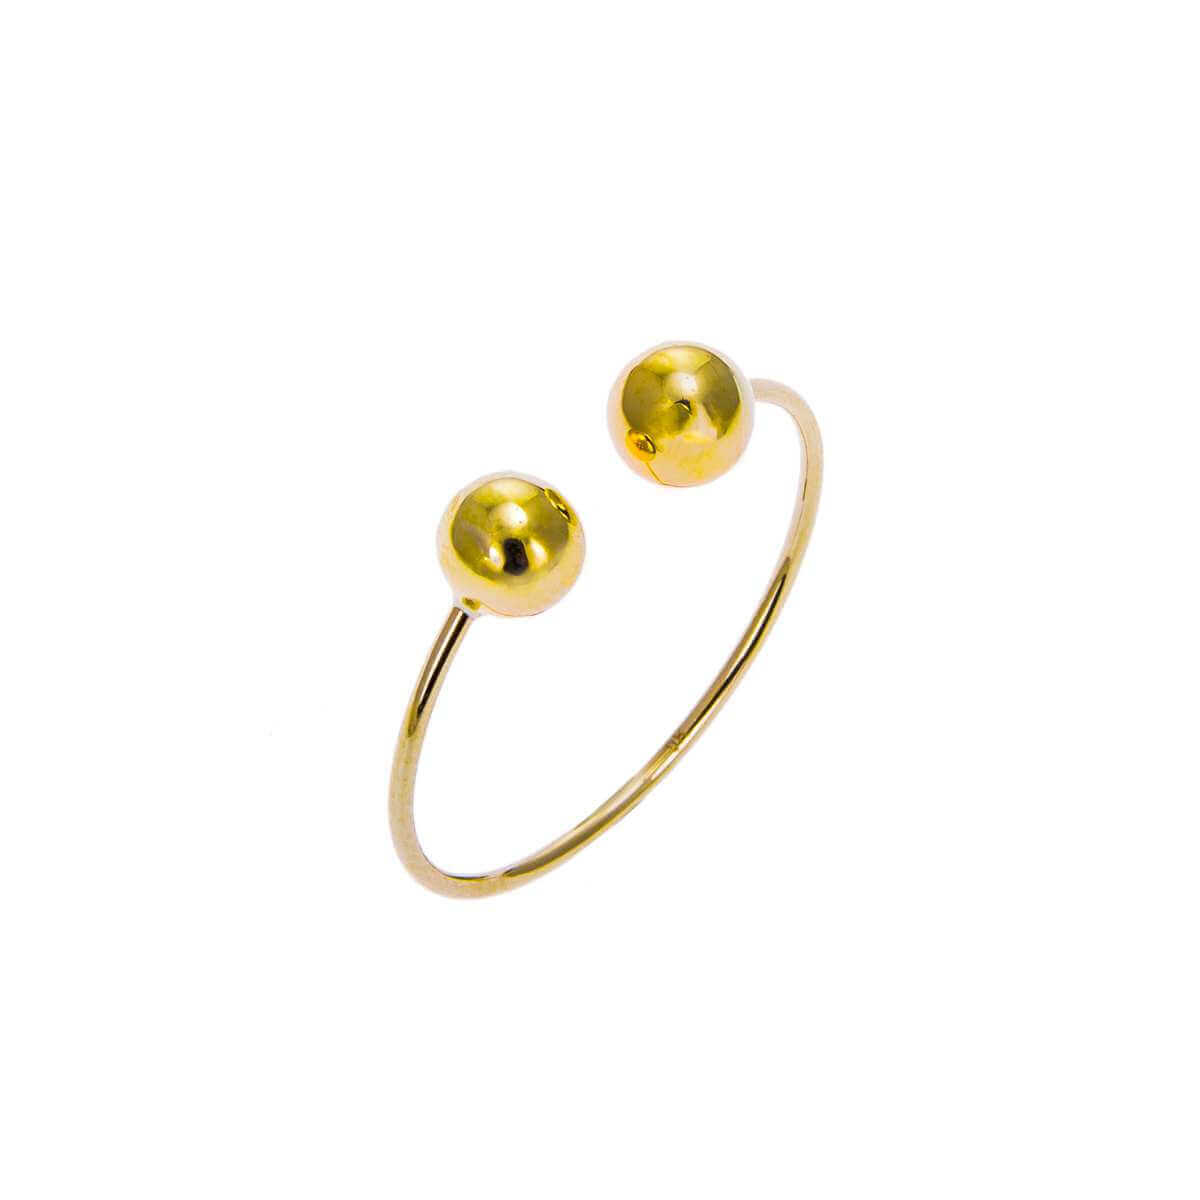 9ct Yellow Gold Double Ball Adjustable Open Ring